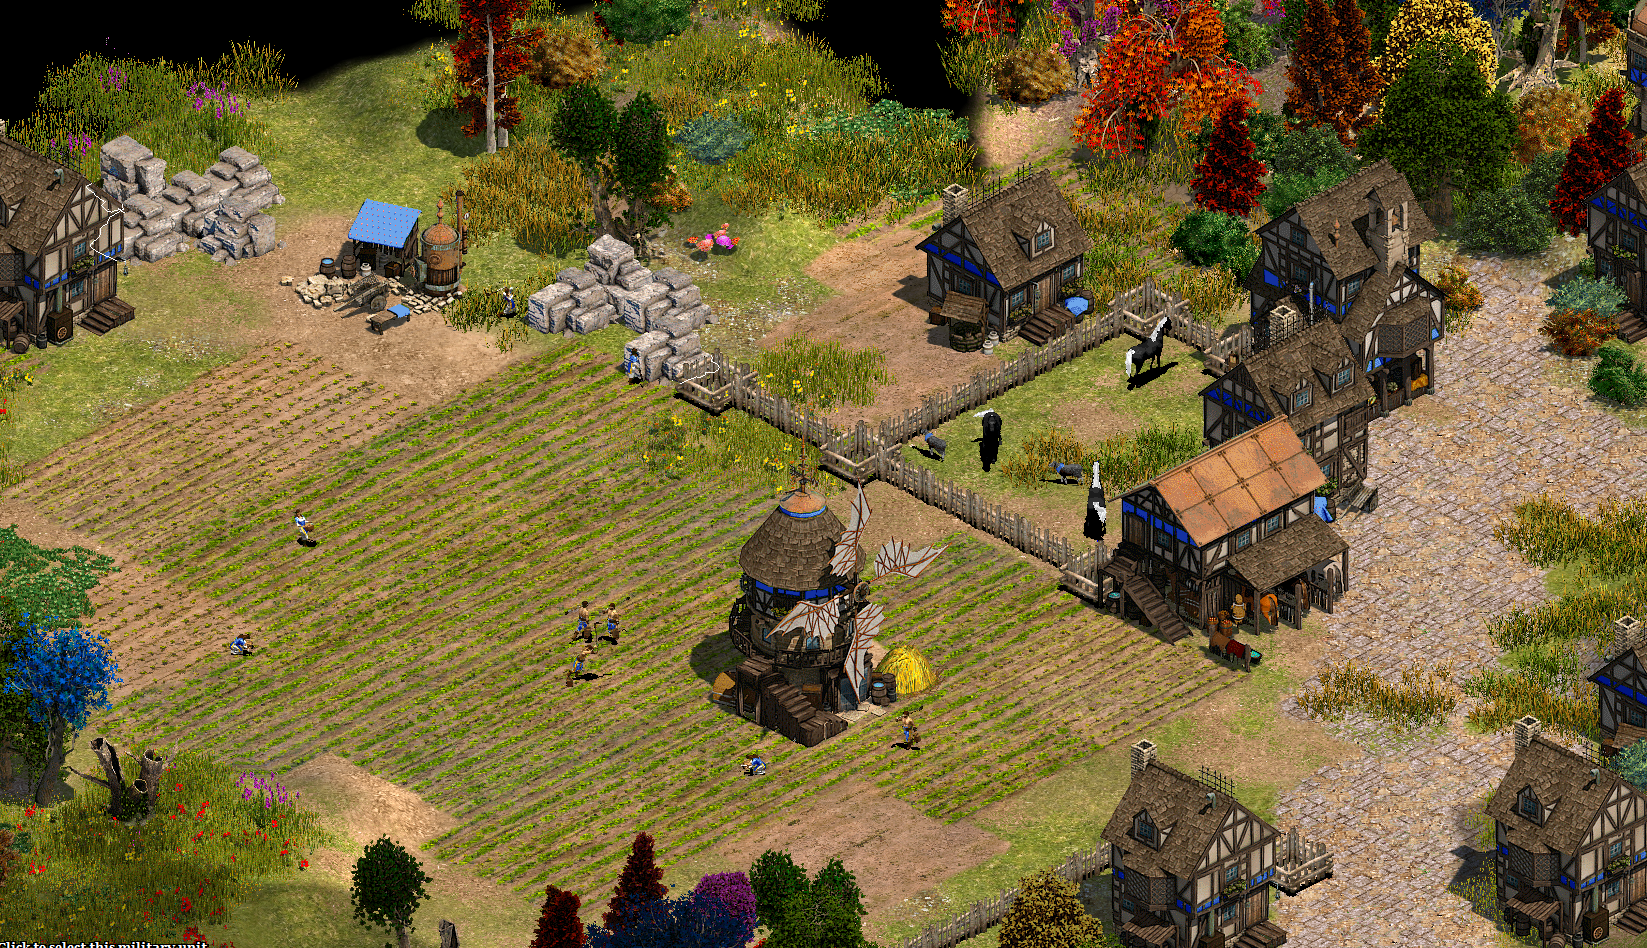 New Stone mines and Farms